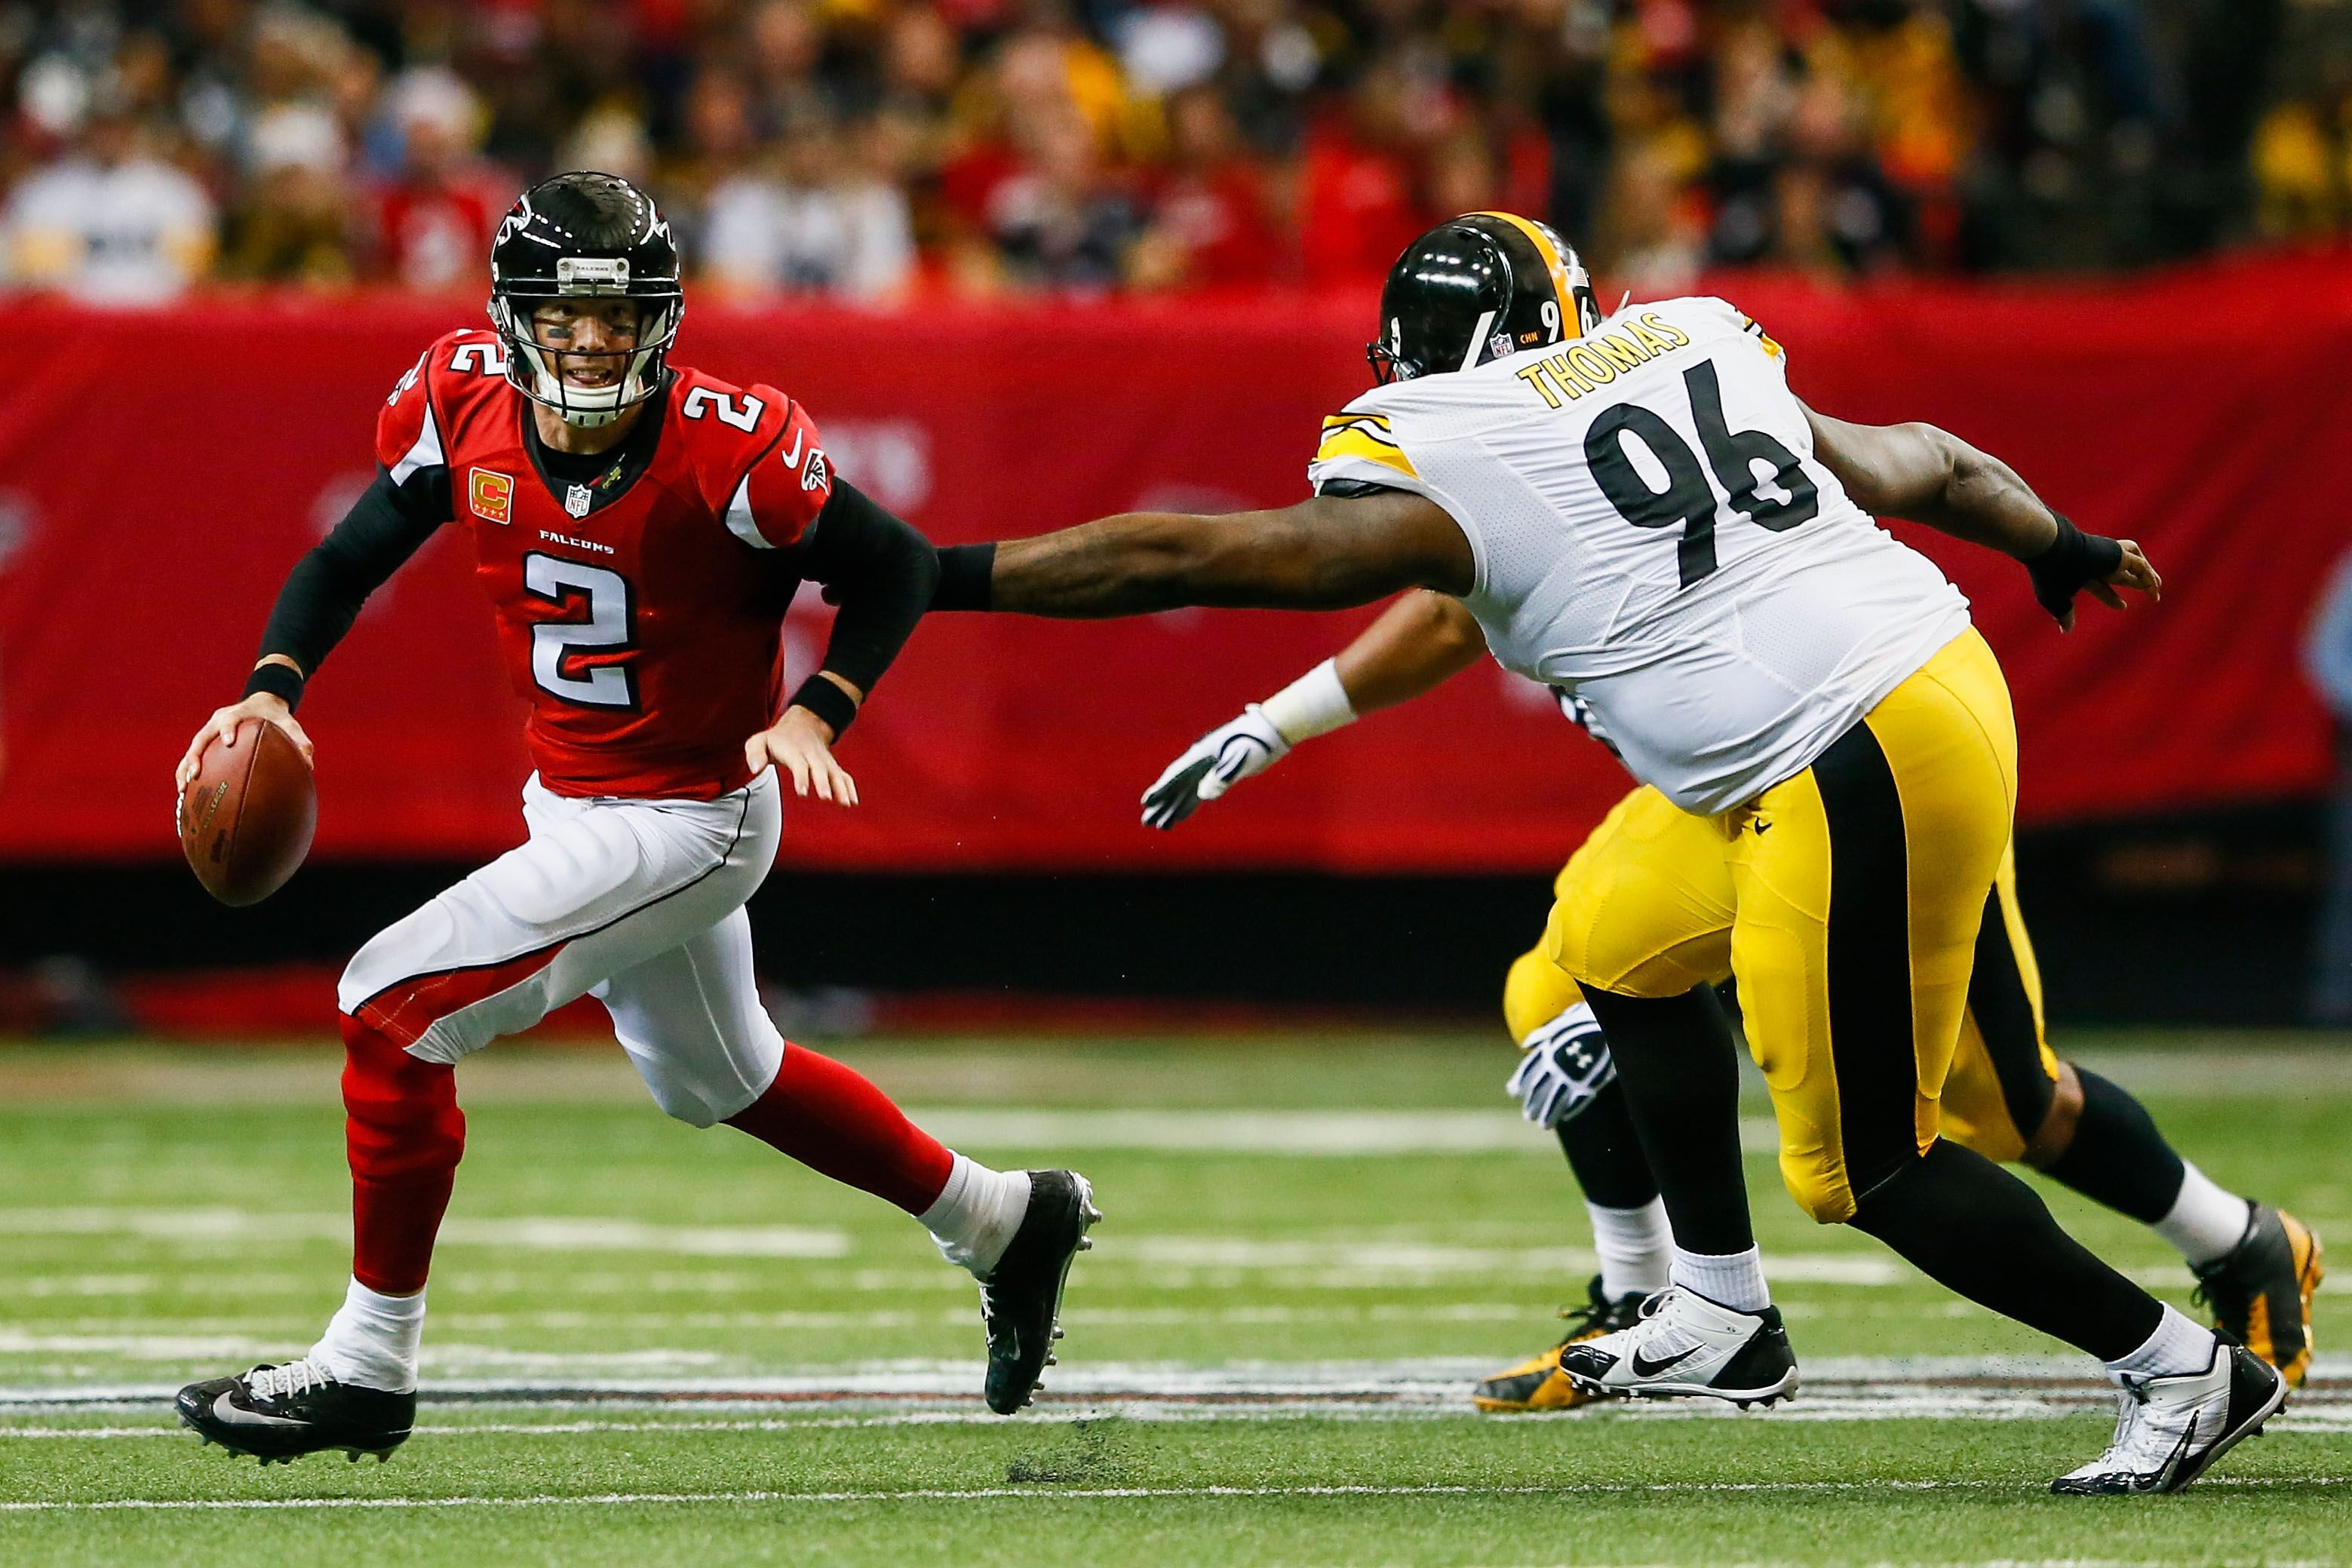 460465192-pittsburgh-steelers-v-atlanta-falcons.jpg